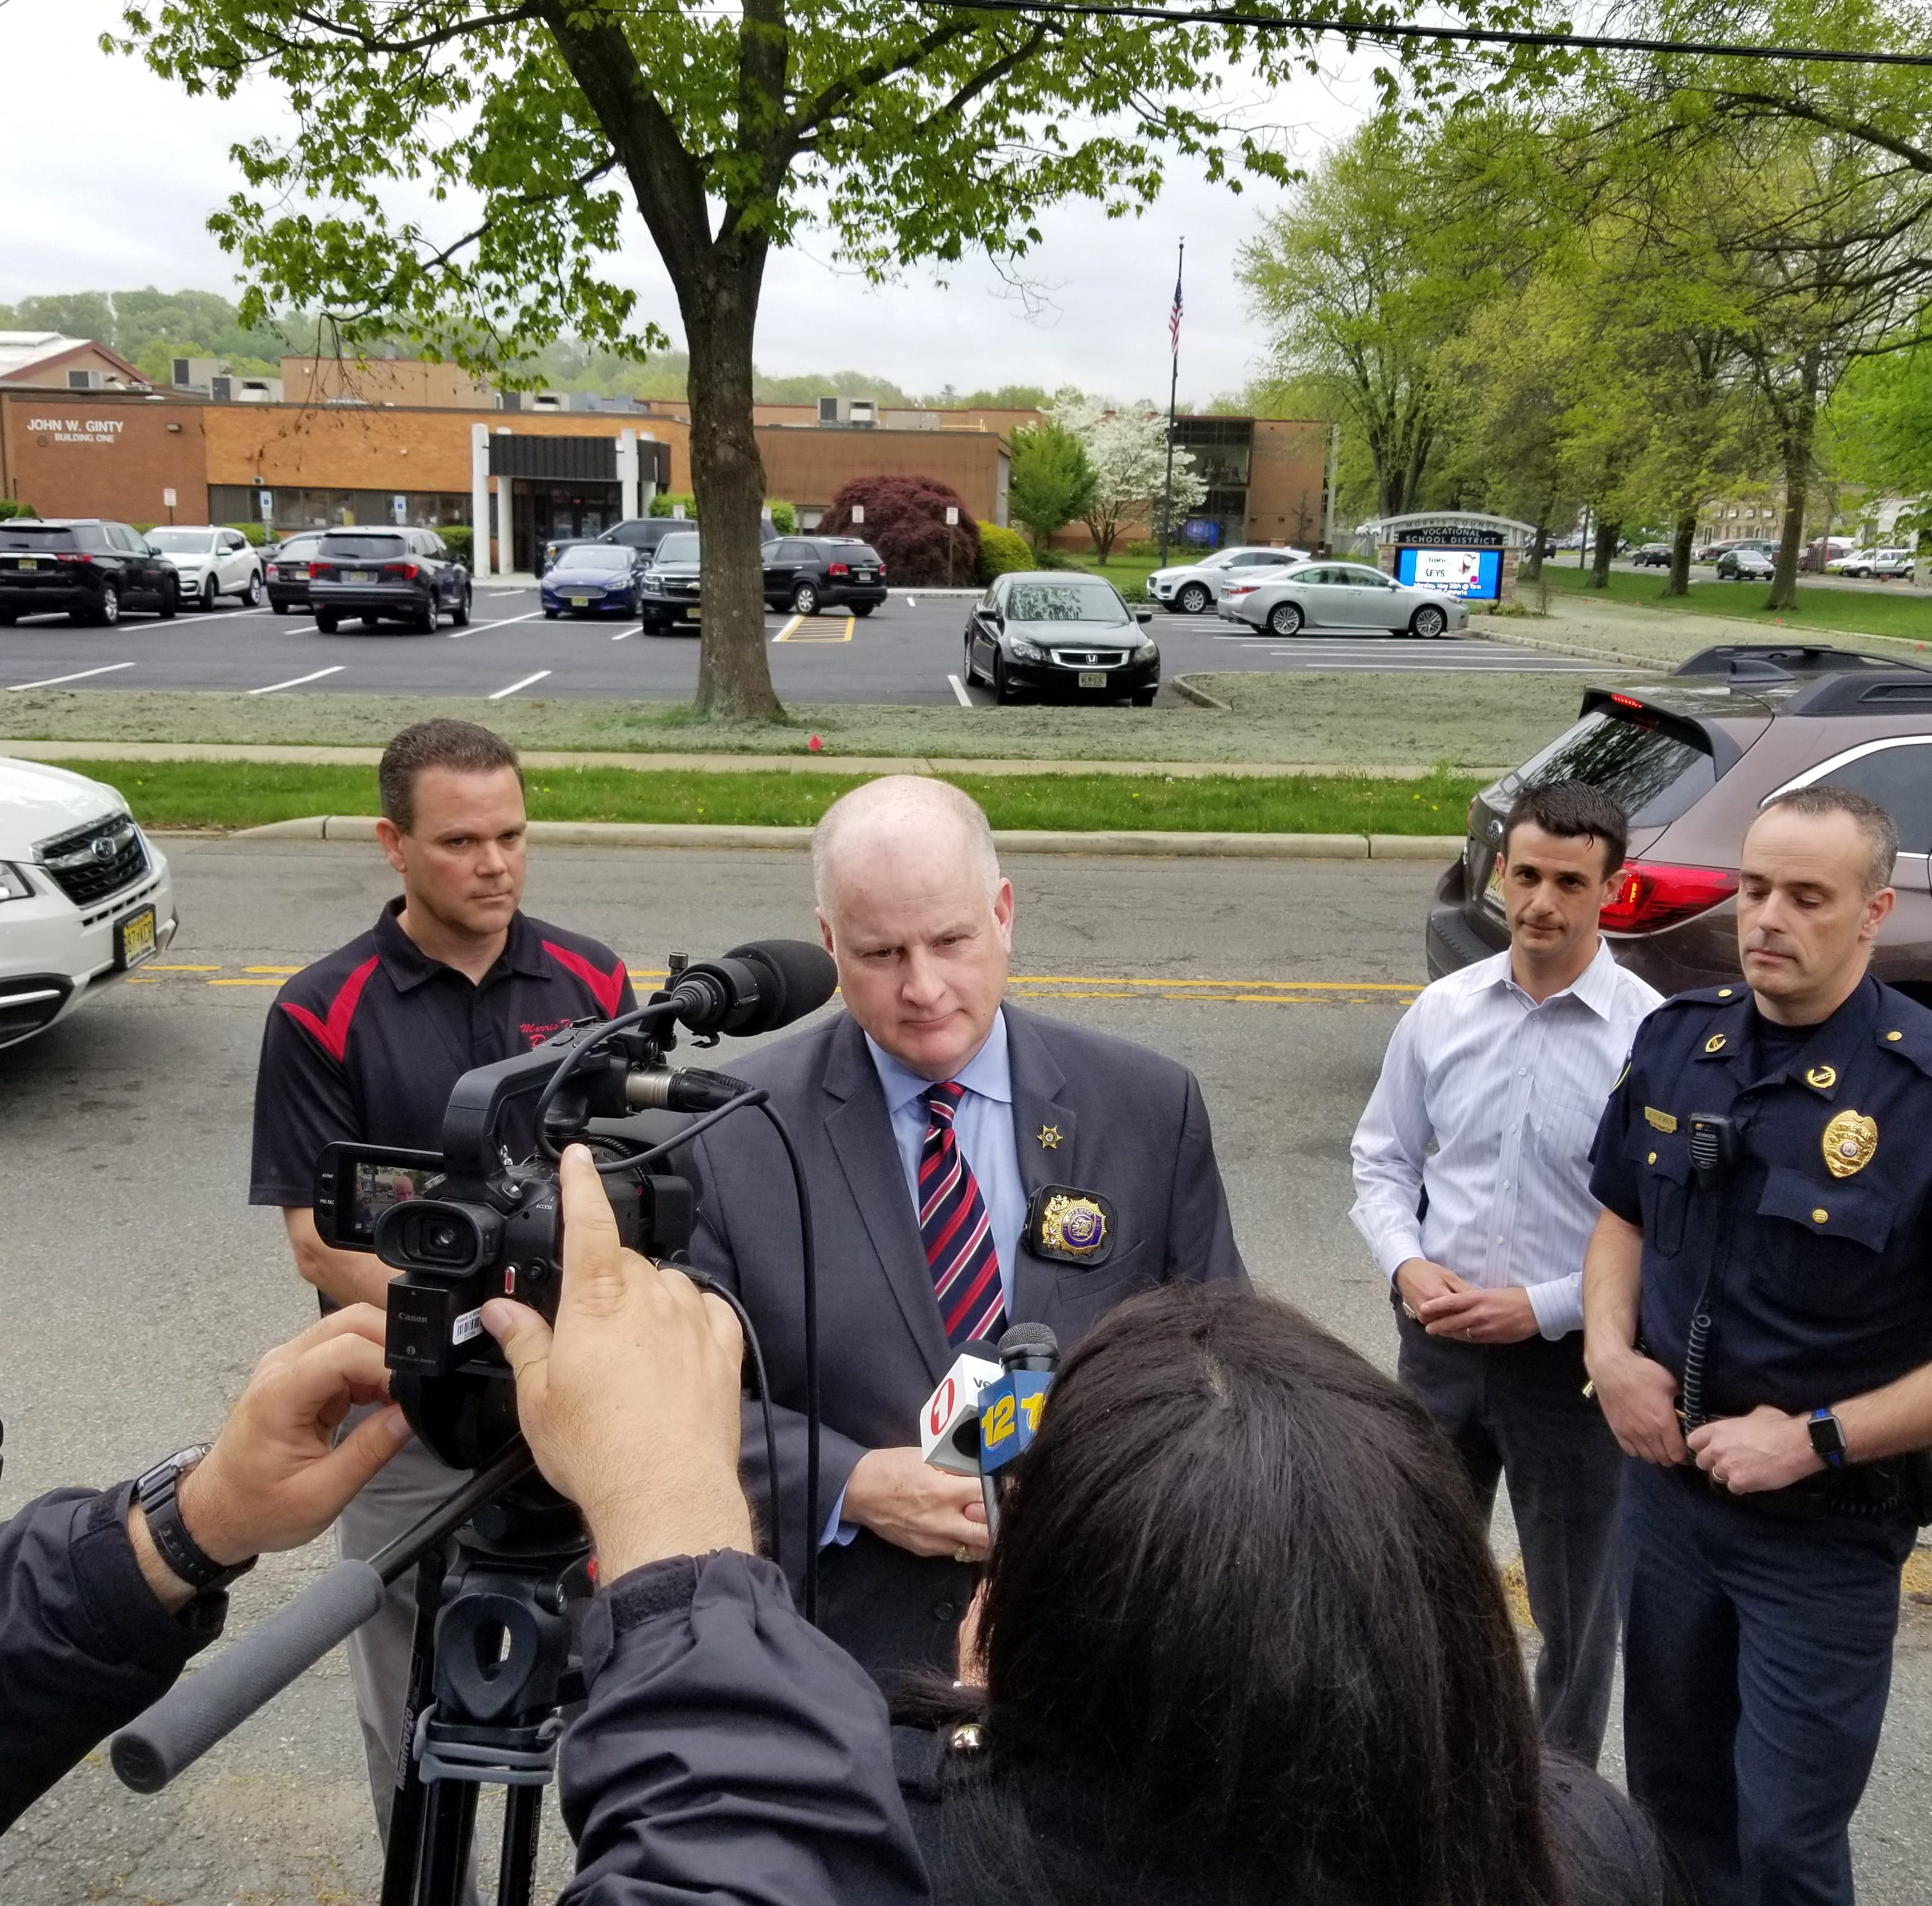 Threat disrupts North Jersey schools, police deem it not credible